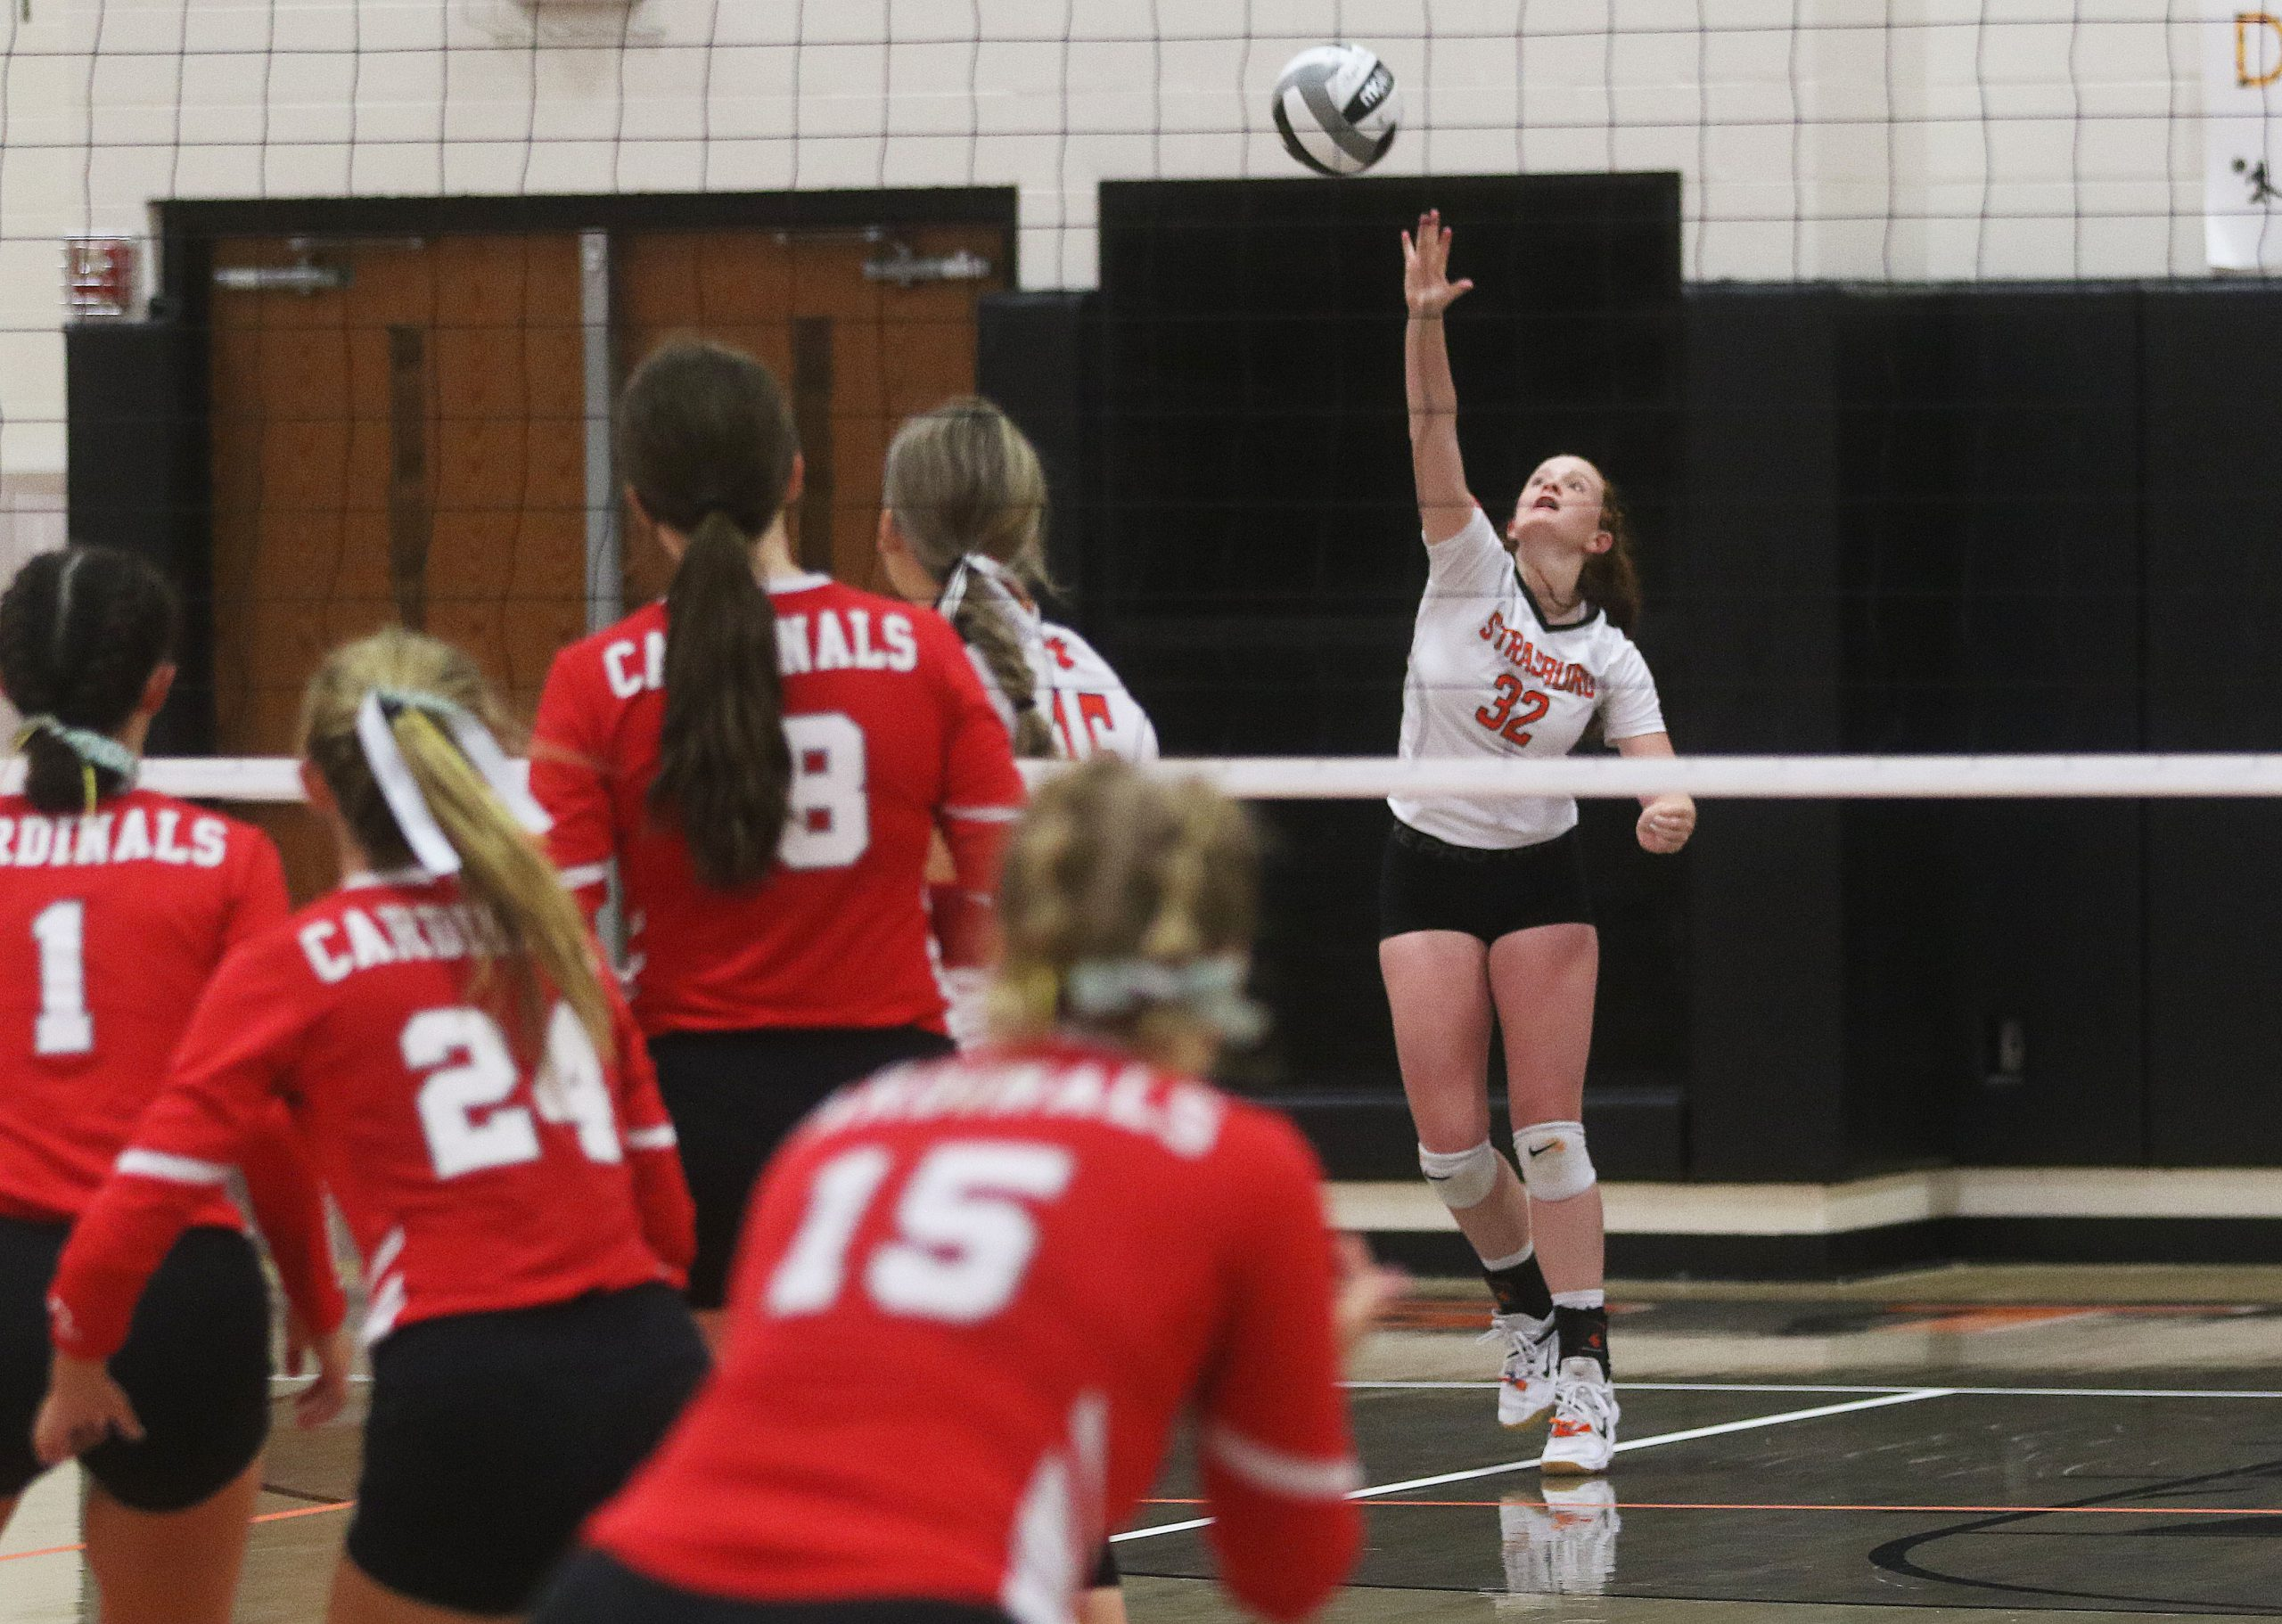 Maddy Edwards of Strasburg serves in game 4 of the volleyball match with Sandy Valley Thursday. The Lady Tigers won the match in 4 games. (JMN Sports/ Jim Cummings)